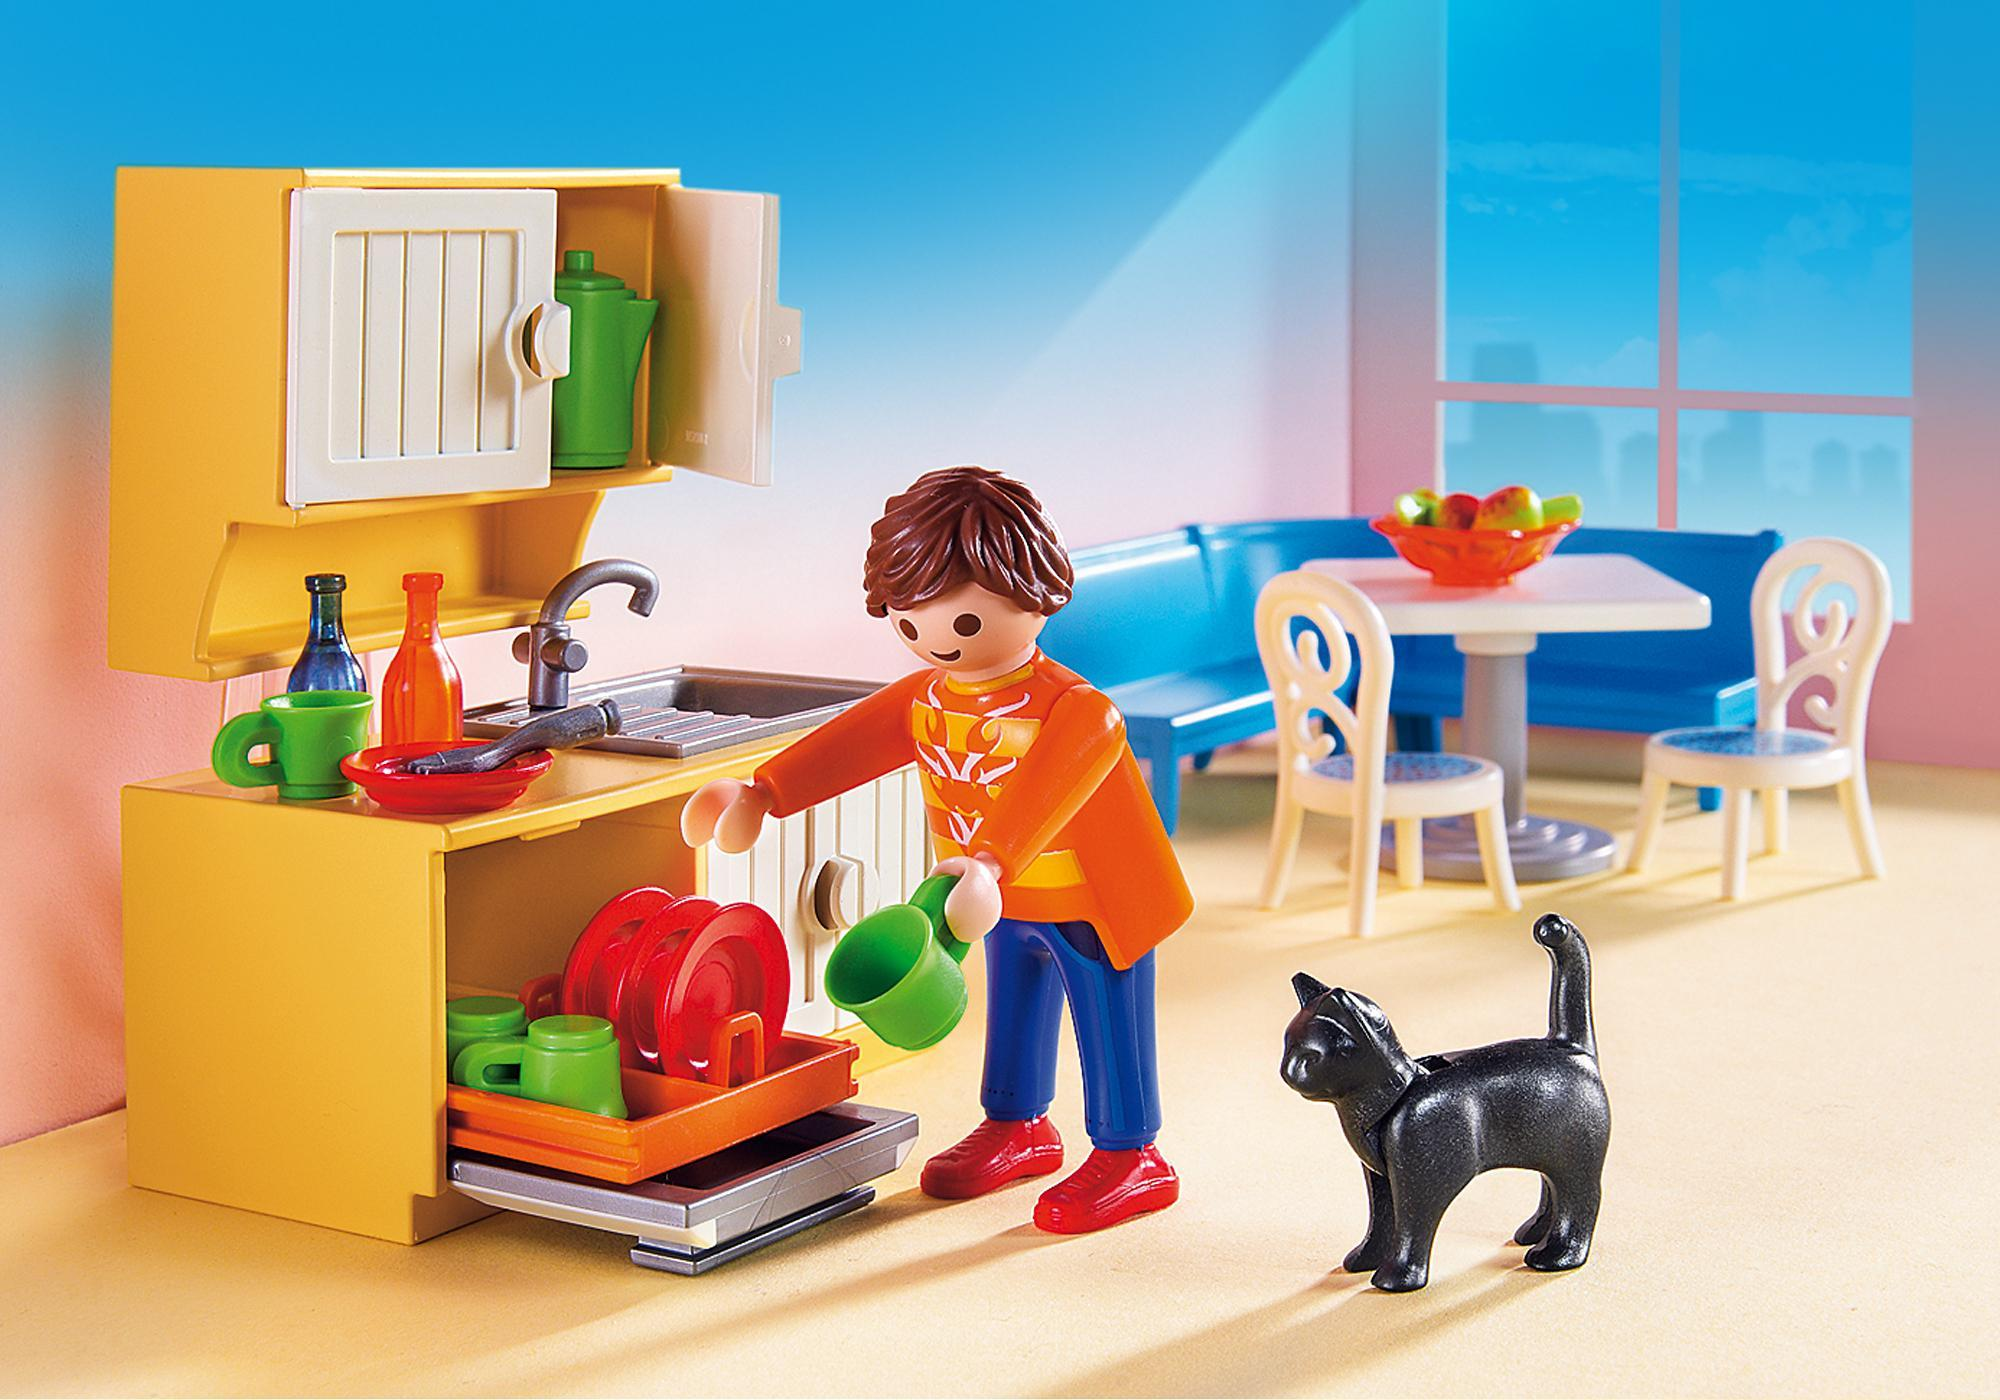 Playmobil Küche 5336 Country Kitchen - 5336 - Playmobil® Canada